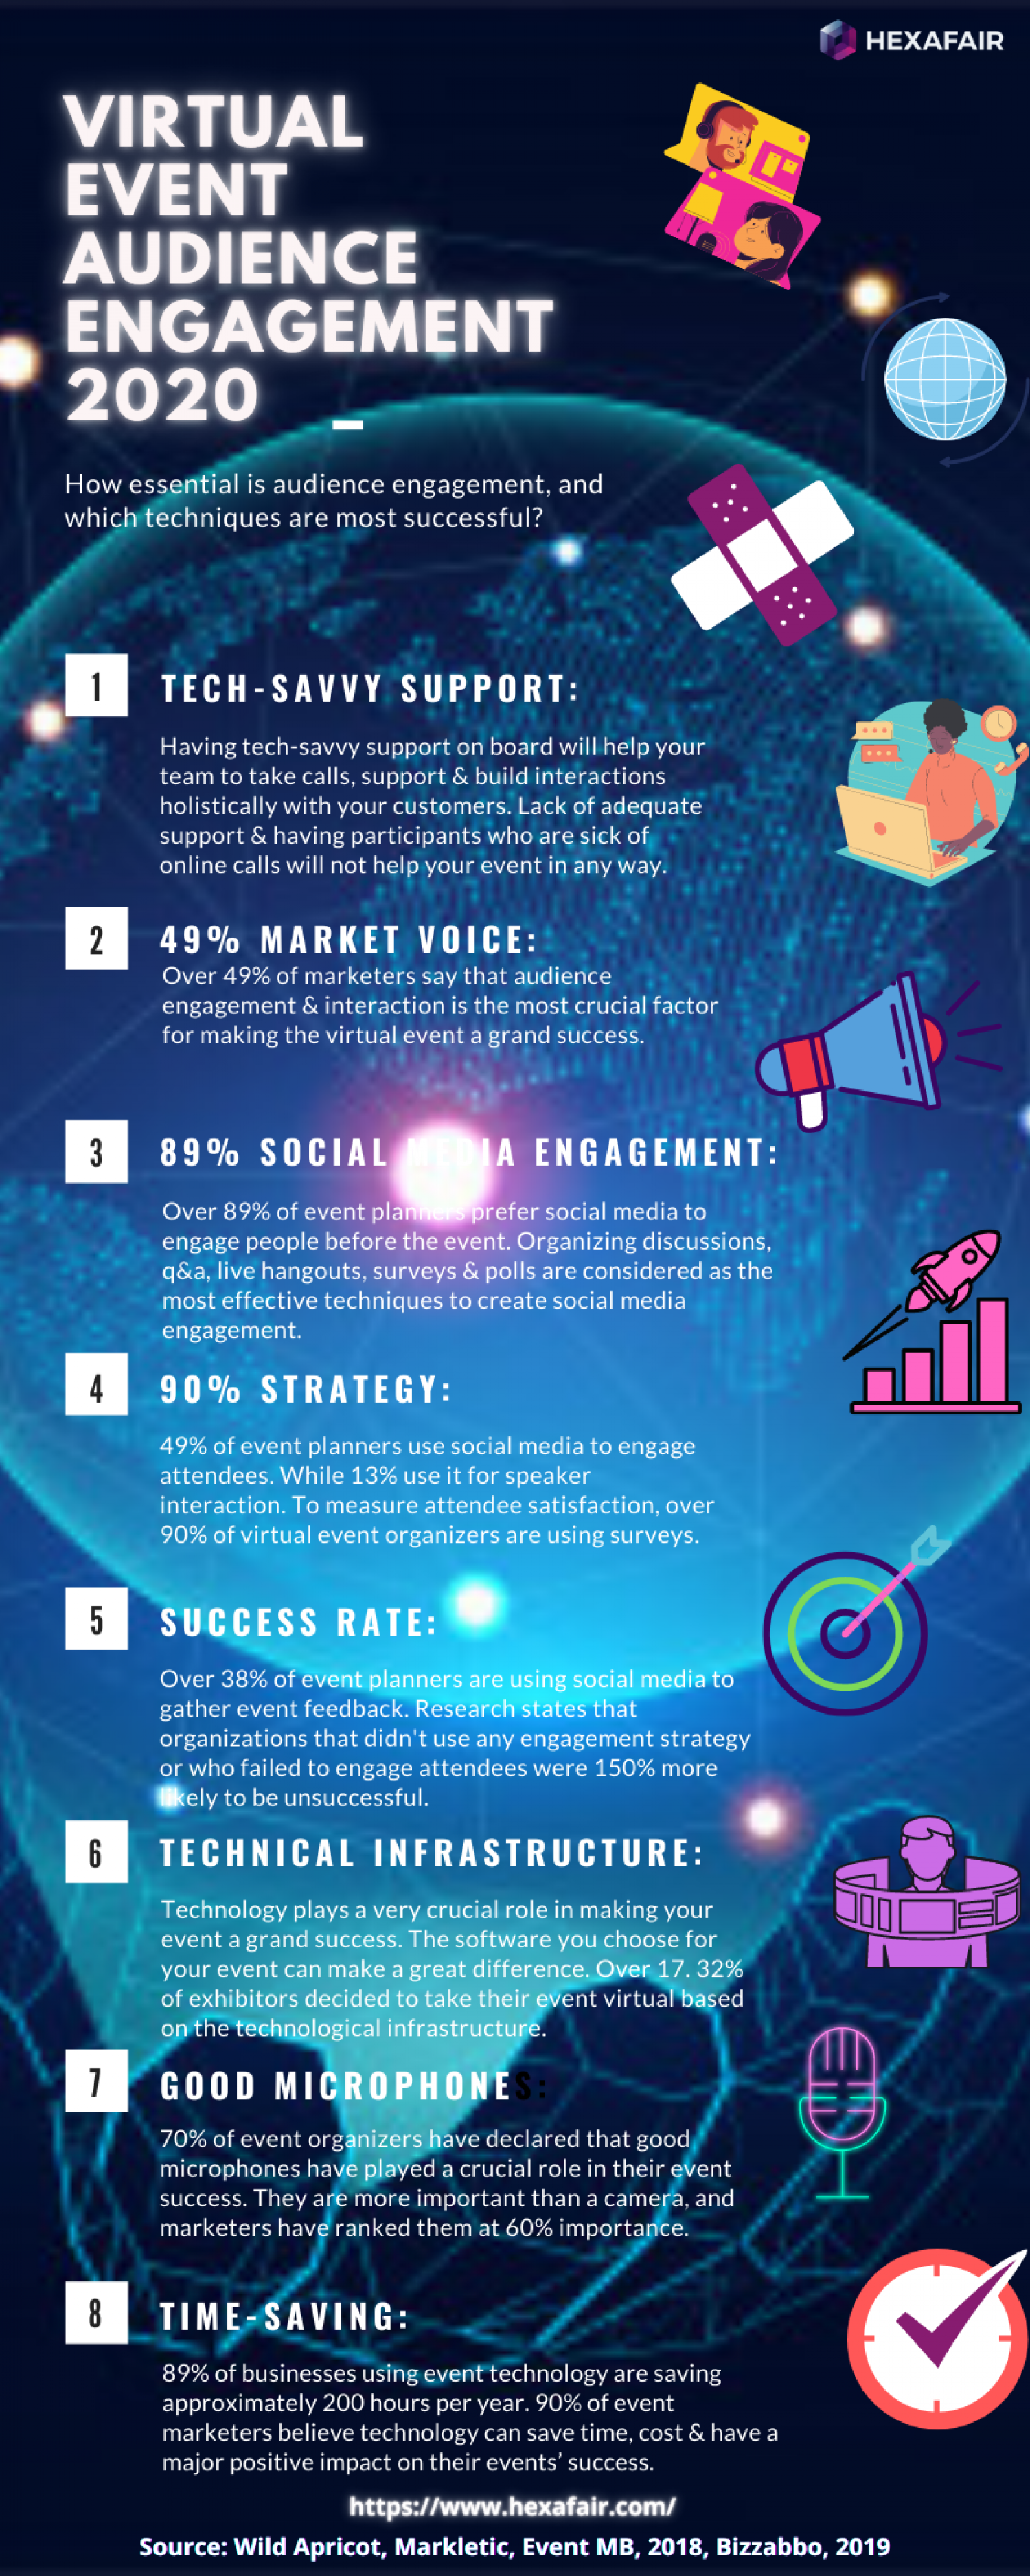 Virtual Events Audience Engagements Report 2020 Infographic